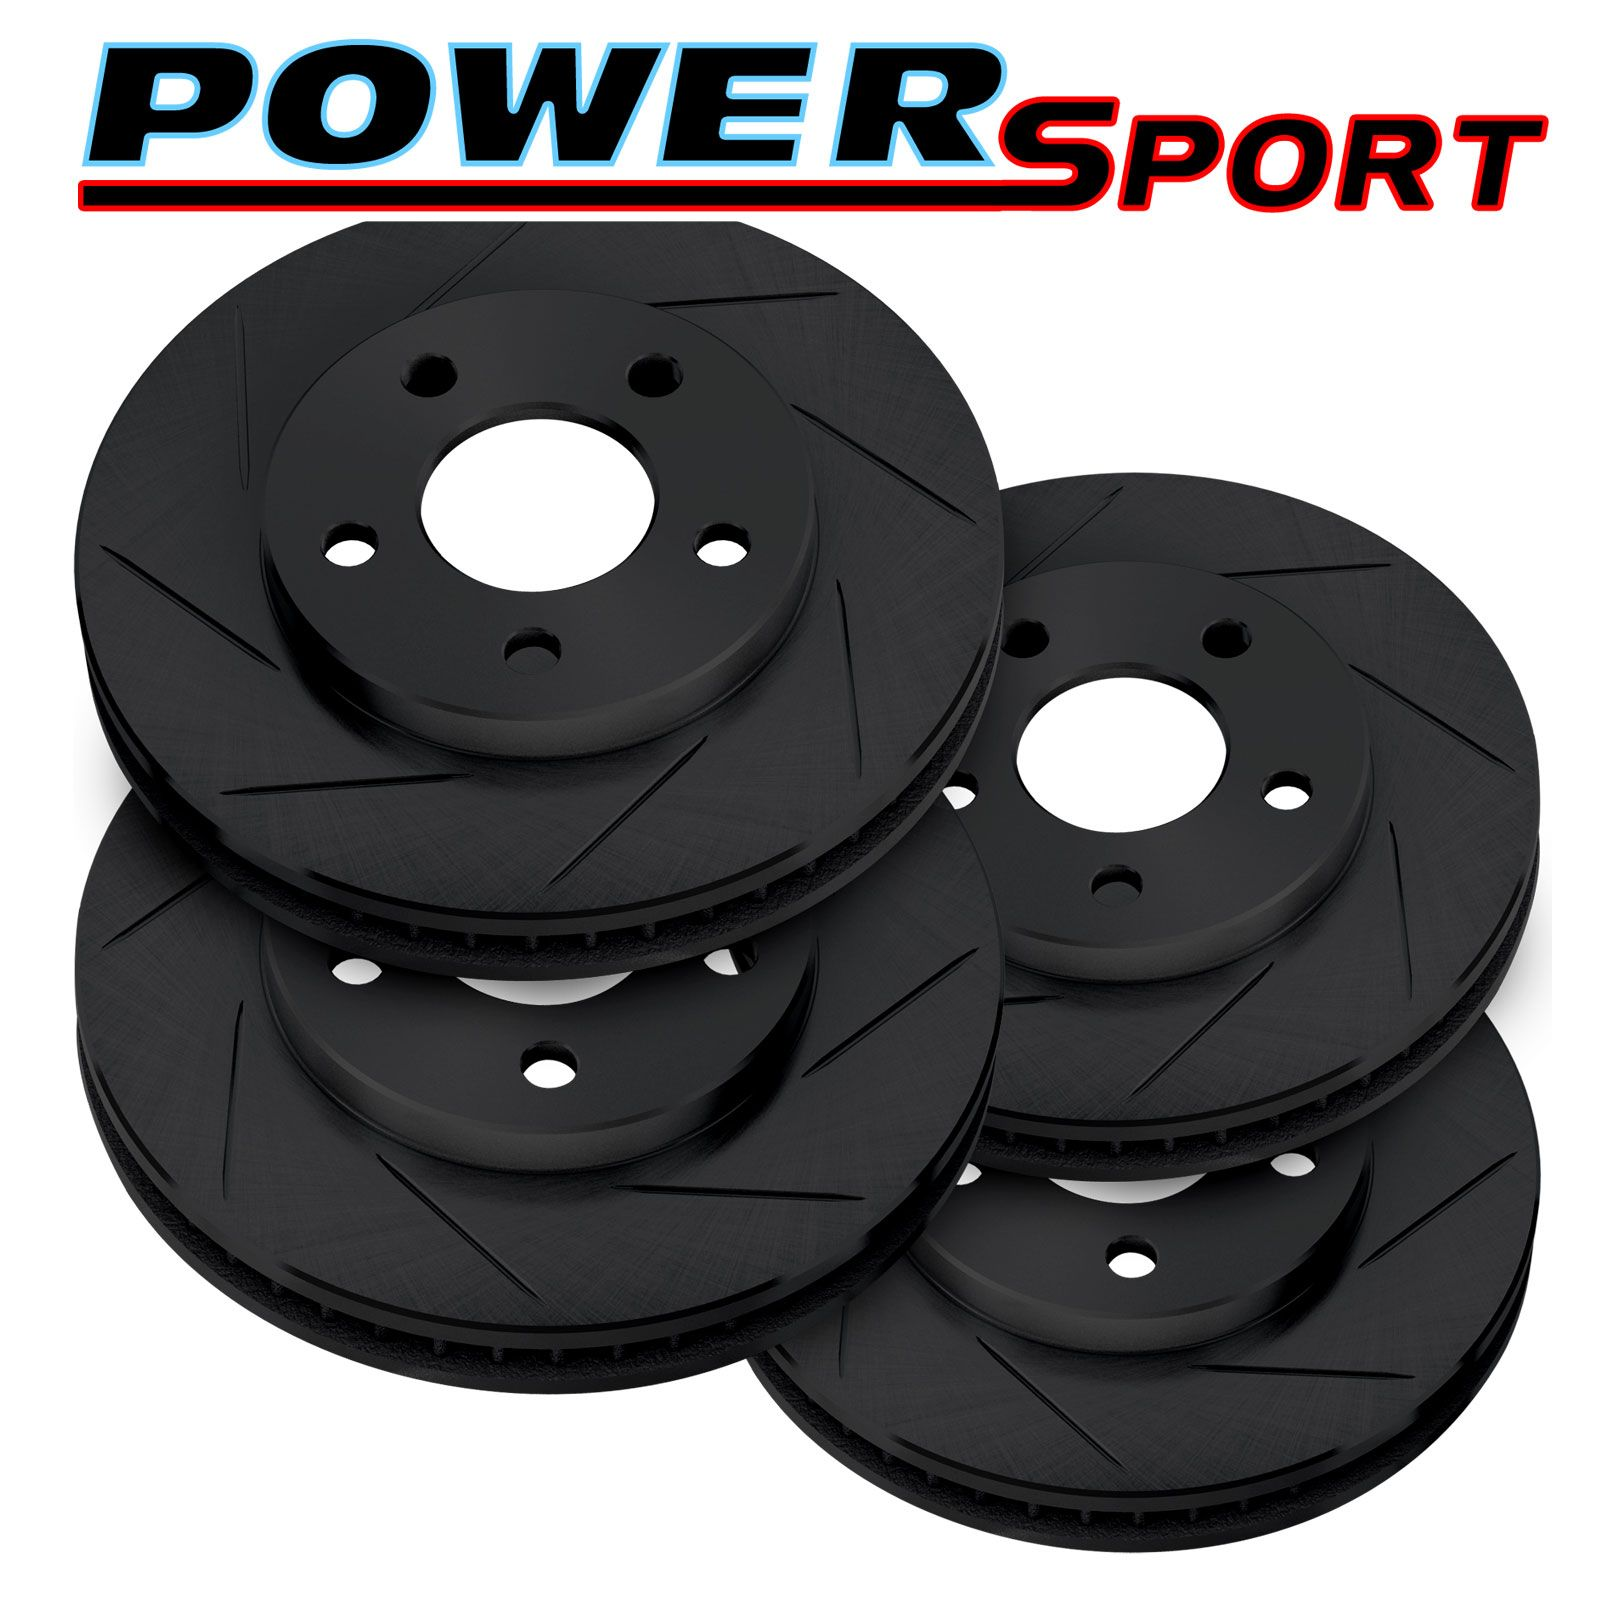 BMW 330i FRONT Brake Rotors POWERSPORT DRILLED SLOTTED /& PADS